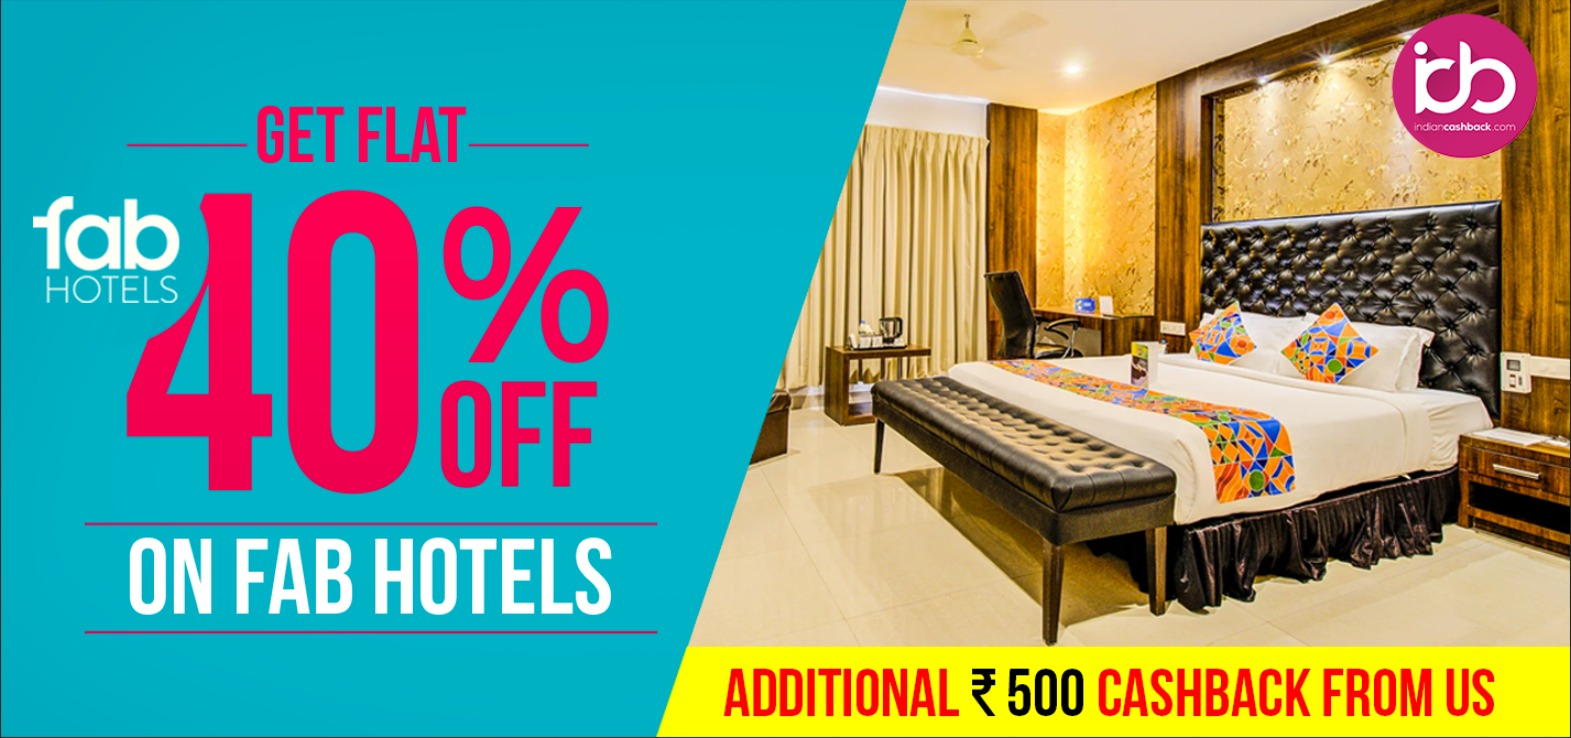 indiancashback-Get-Flat-40percent-OFF-on-Fab-Hotels---Additional-Rs-500-cashback-from-us